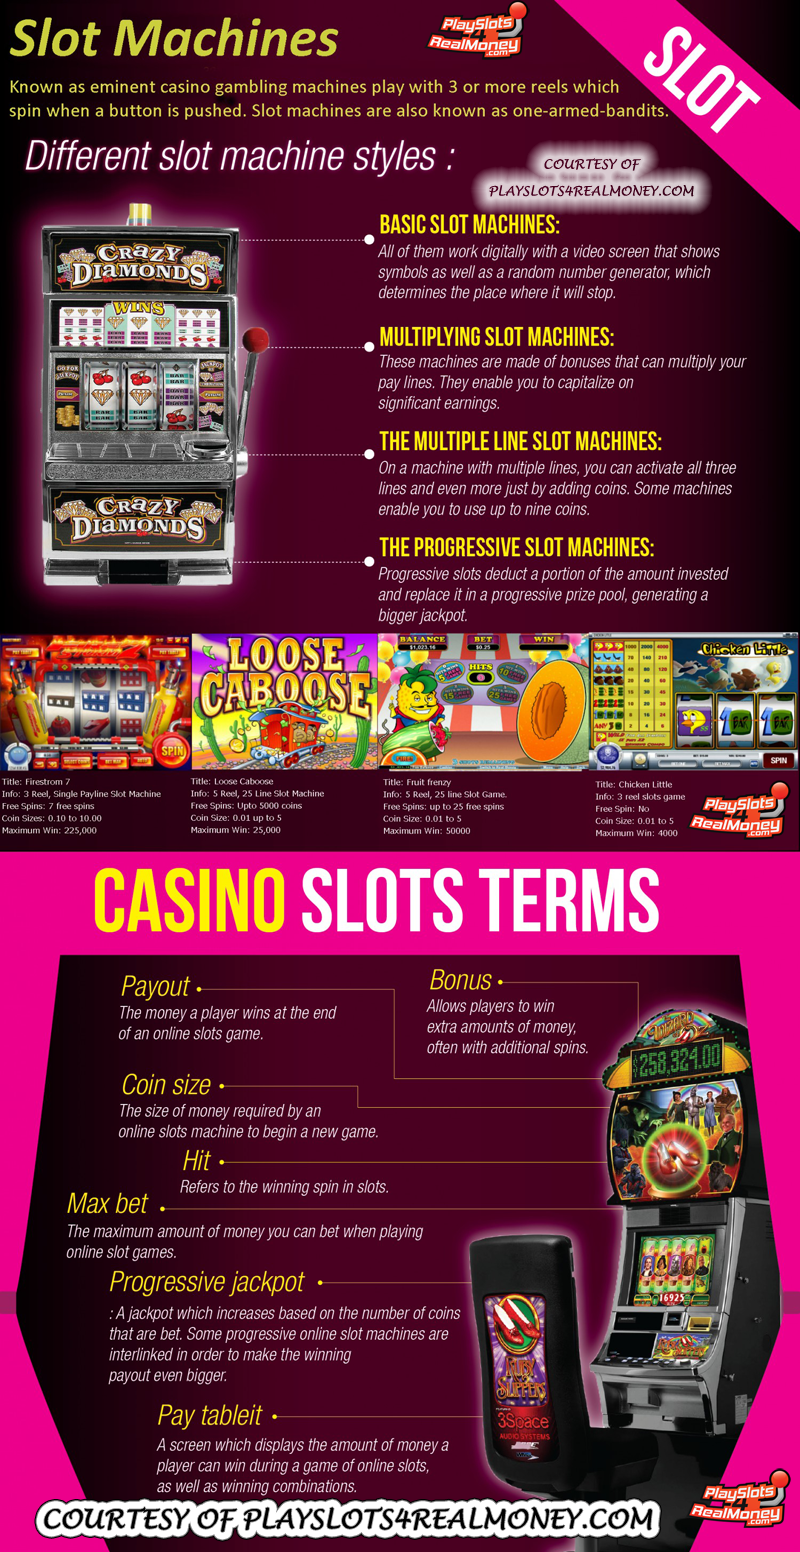 Types of Slot Machines - Popular Ways to Play Slots Online